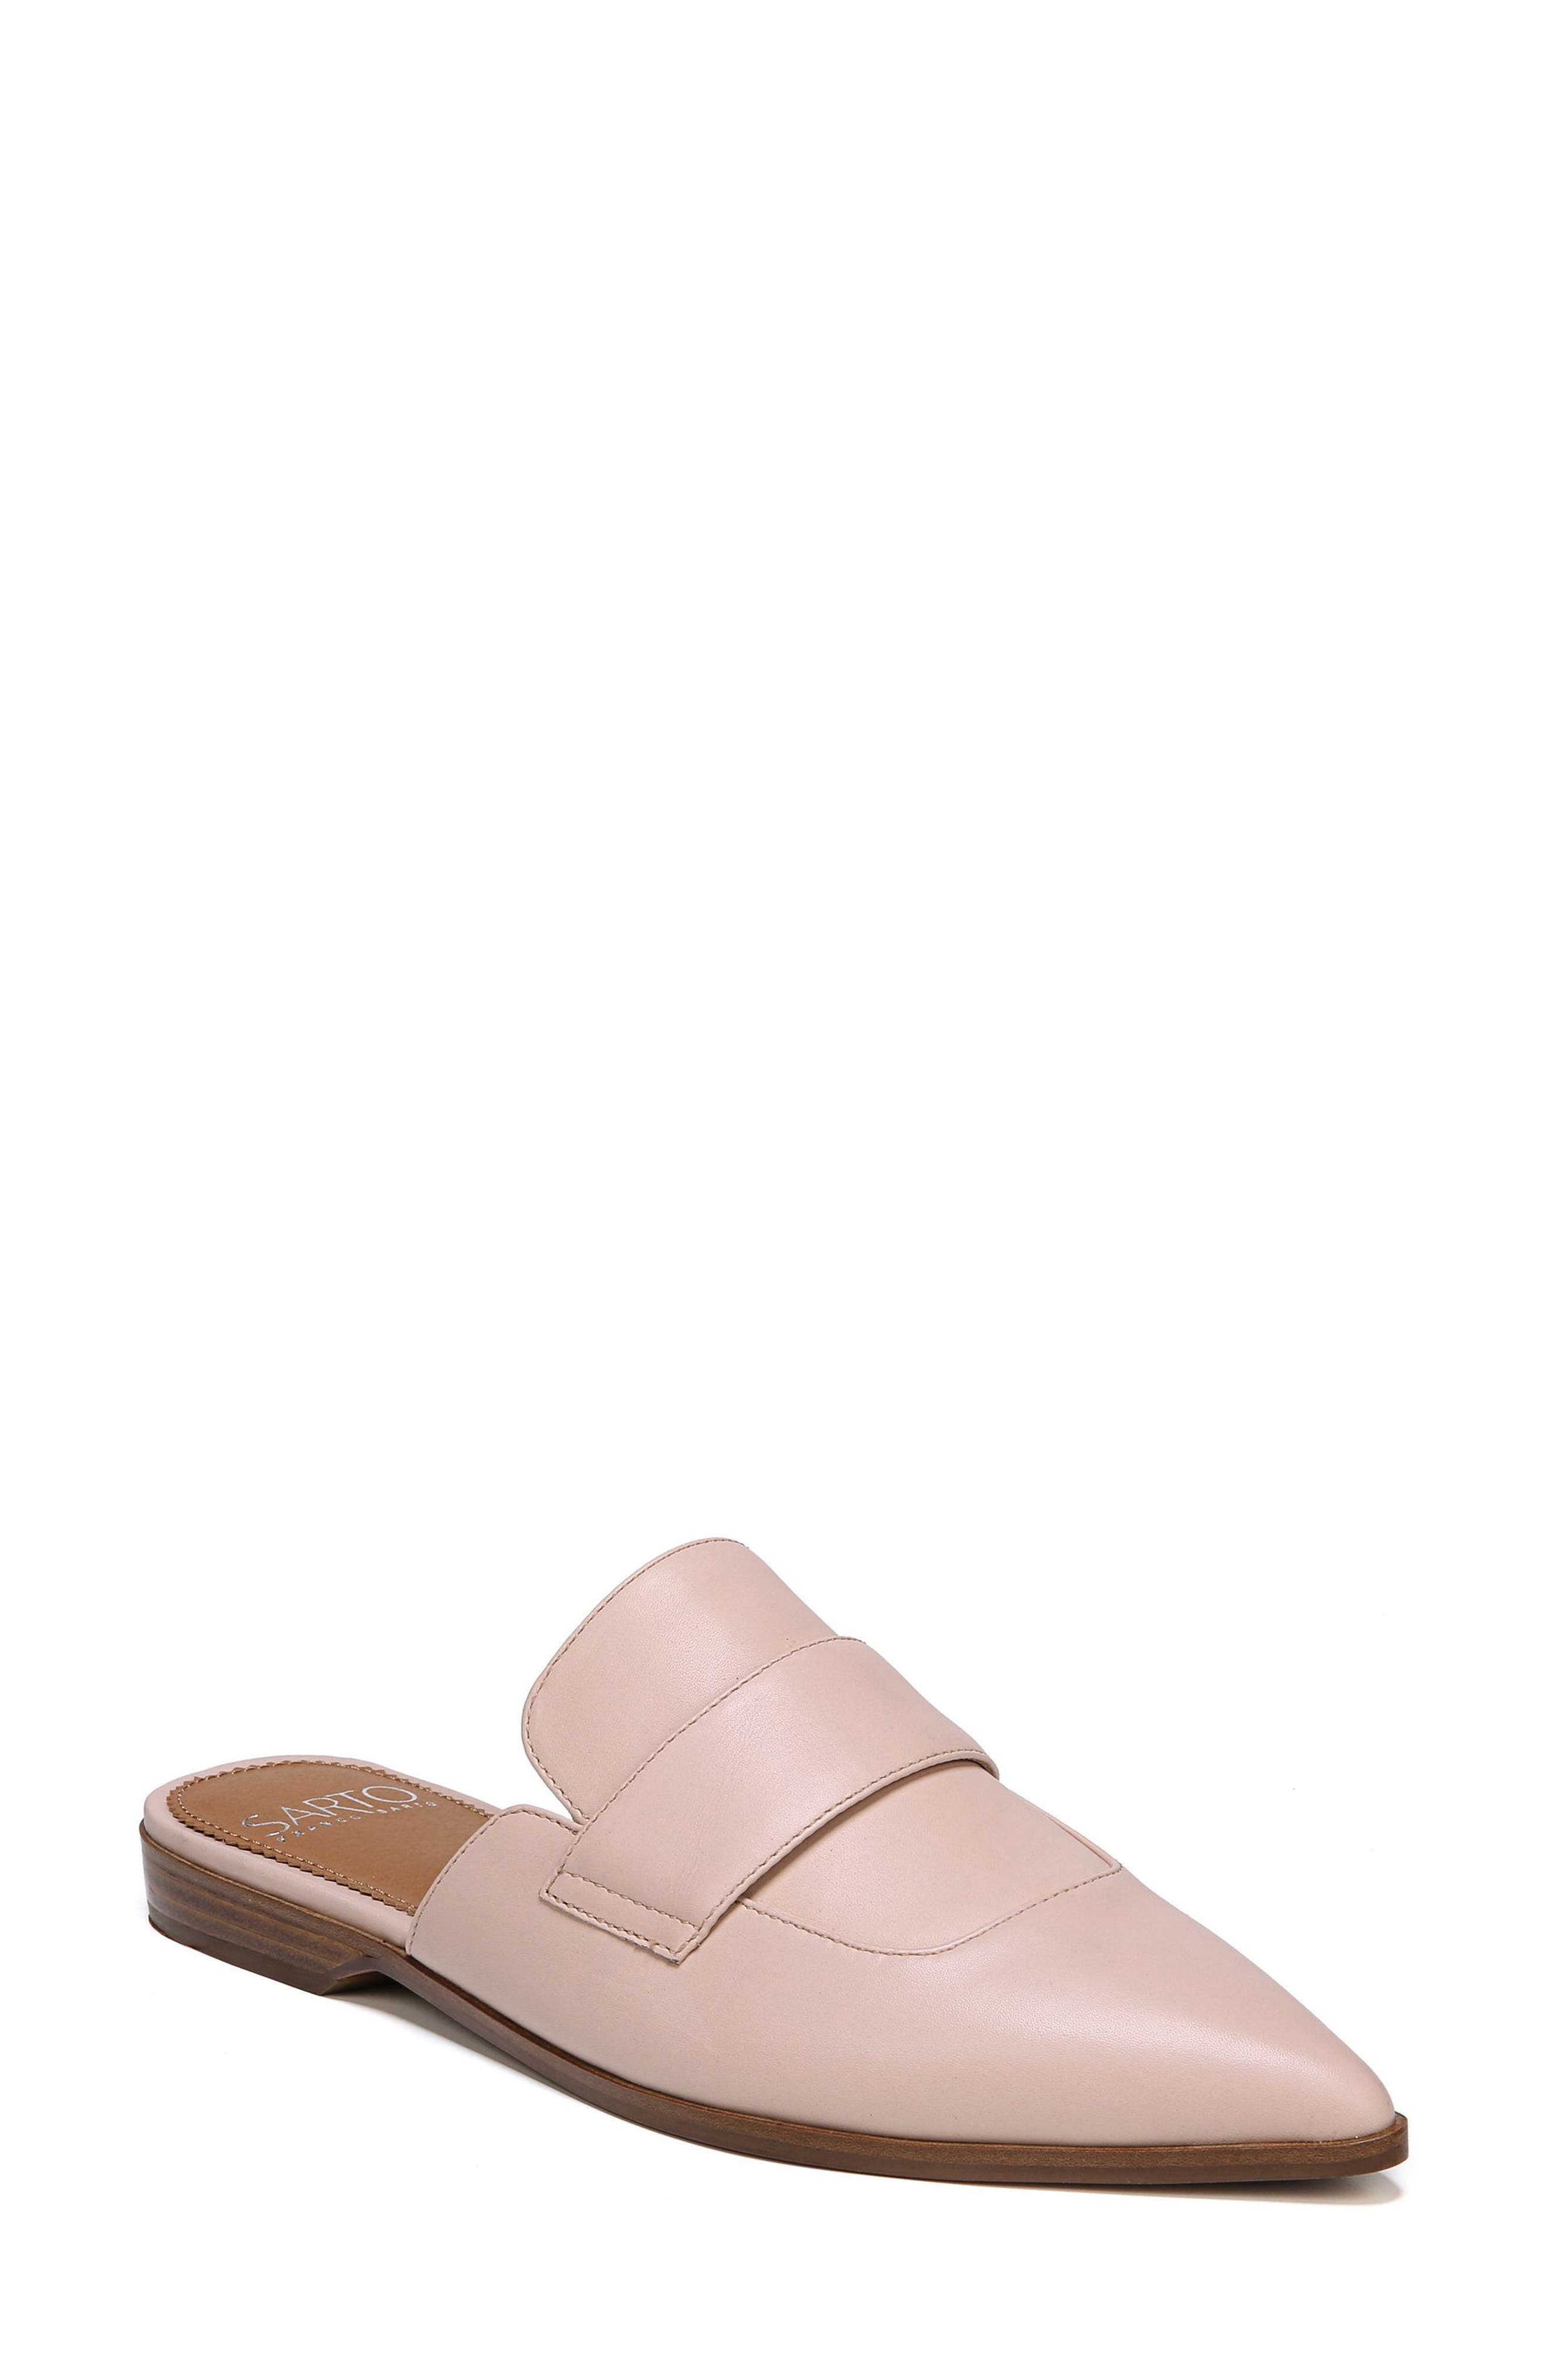 Palmer Mule,                         Main,                         color, Blush Leather